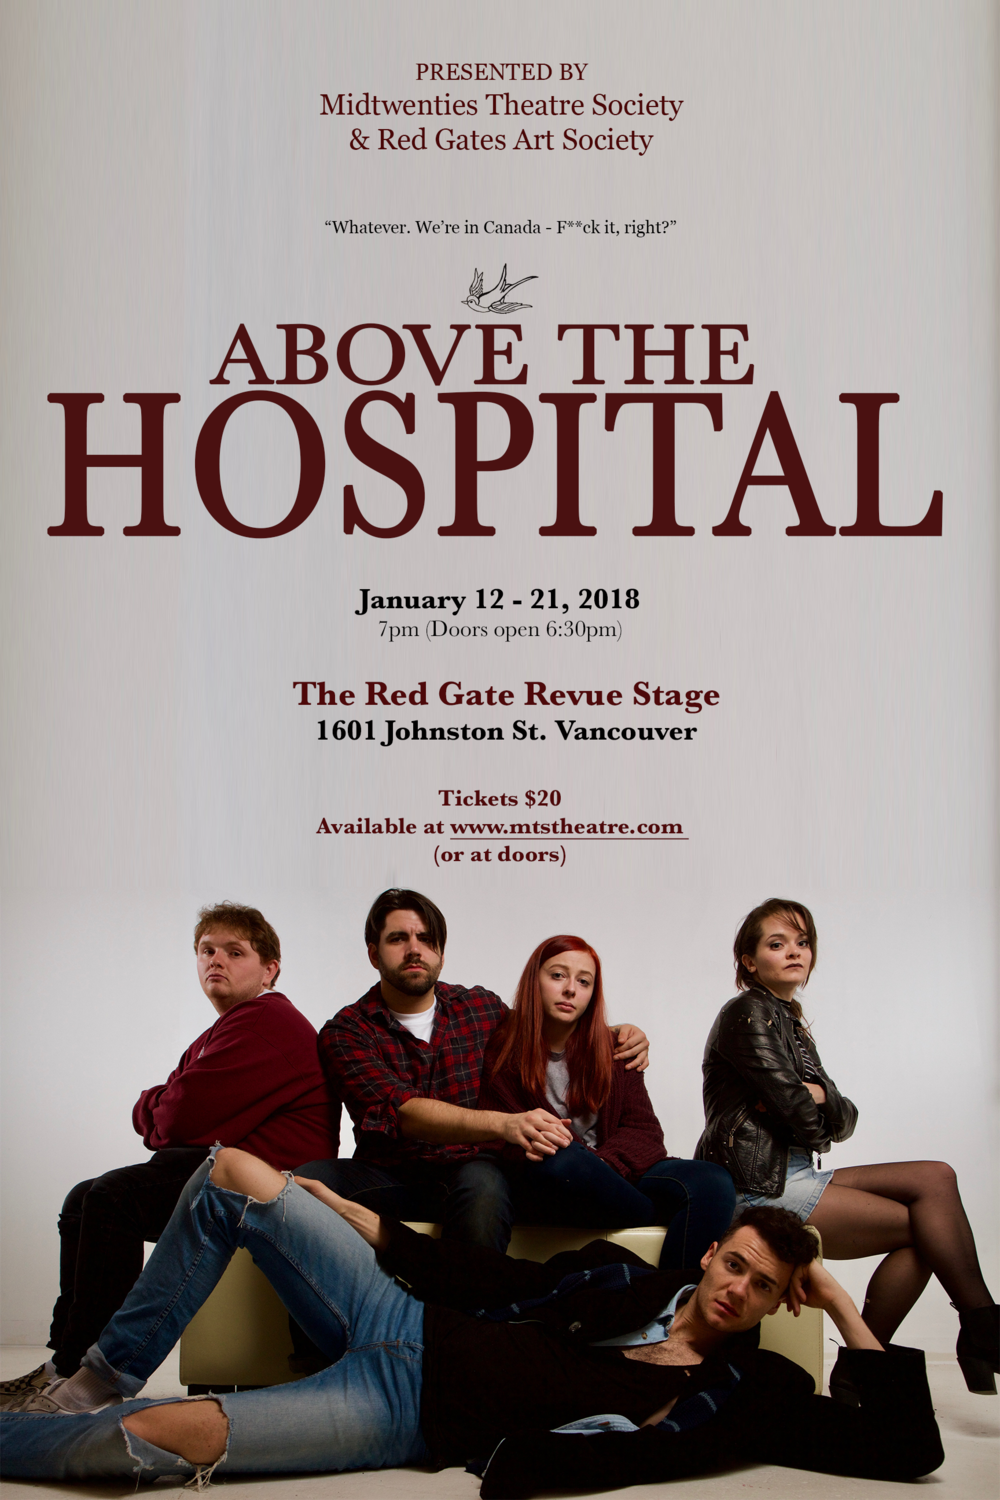 Above The Hospital Posters 1.png